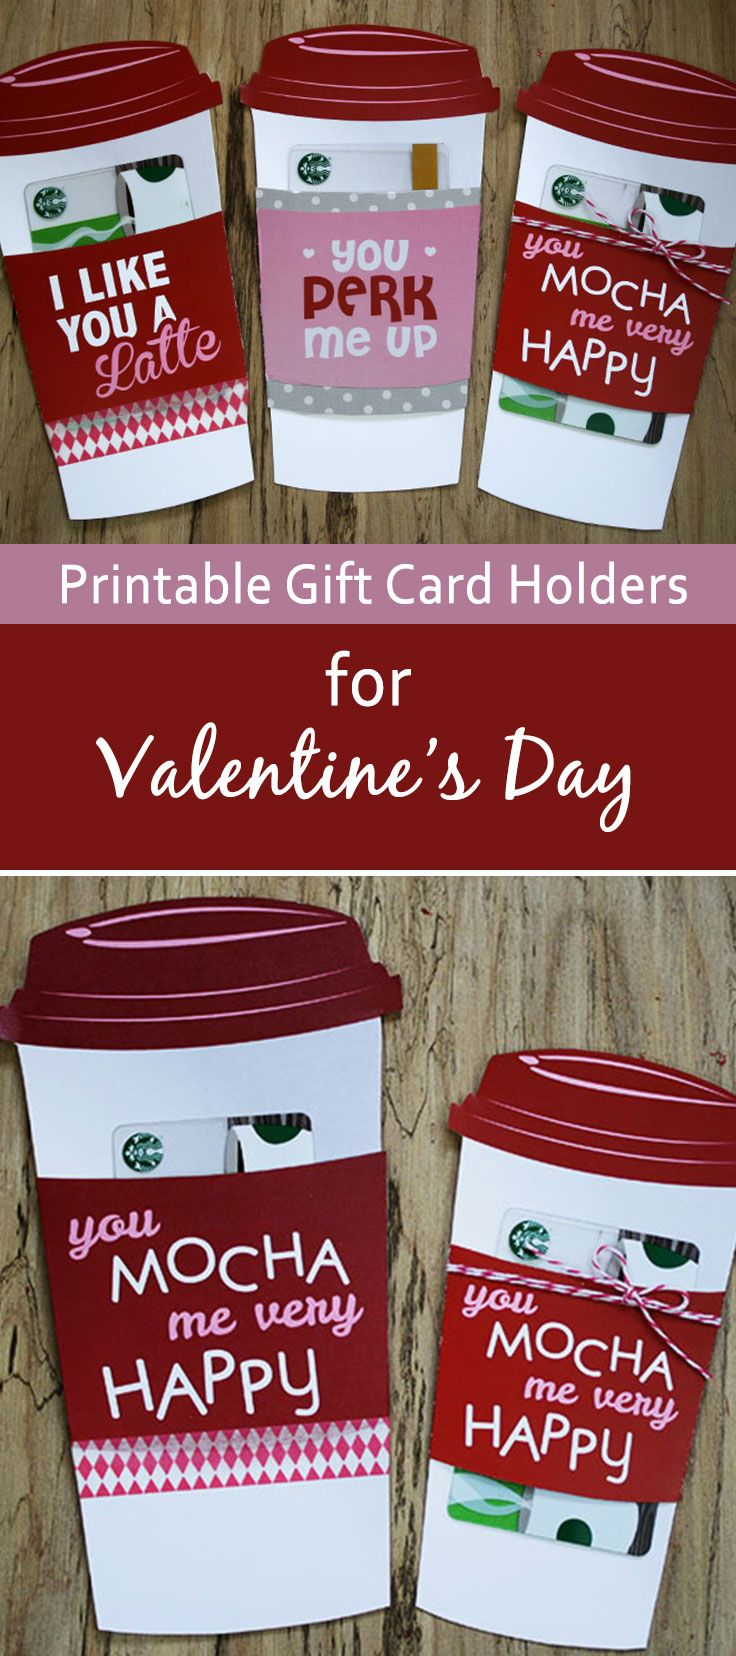 Best 25+ Cute valentines day gifts ideas on Pinterest | Fun ...